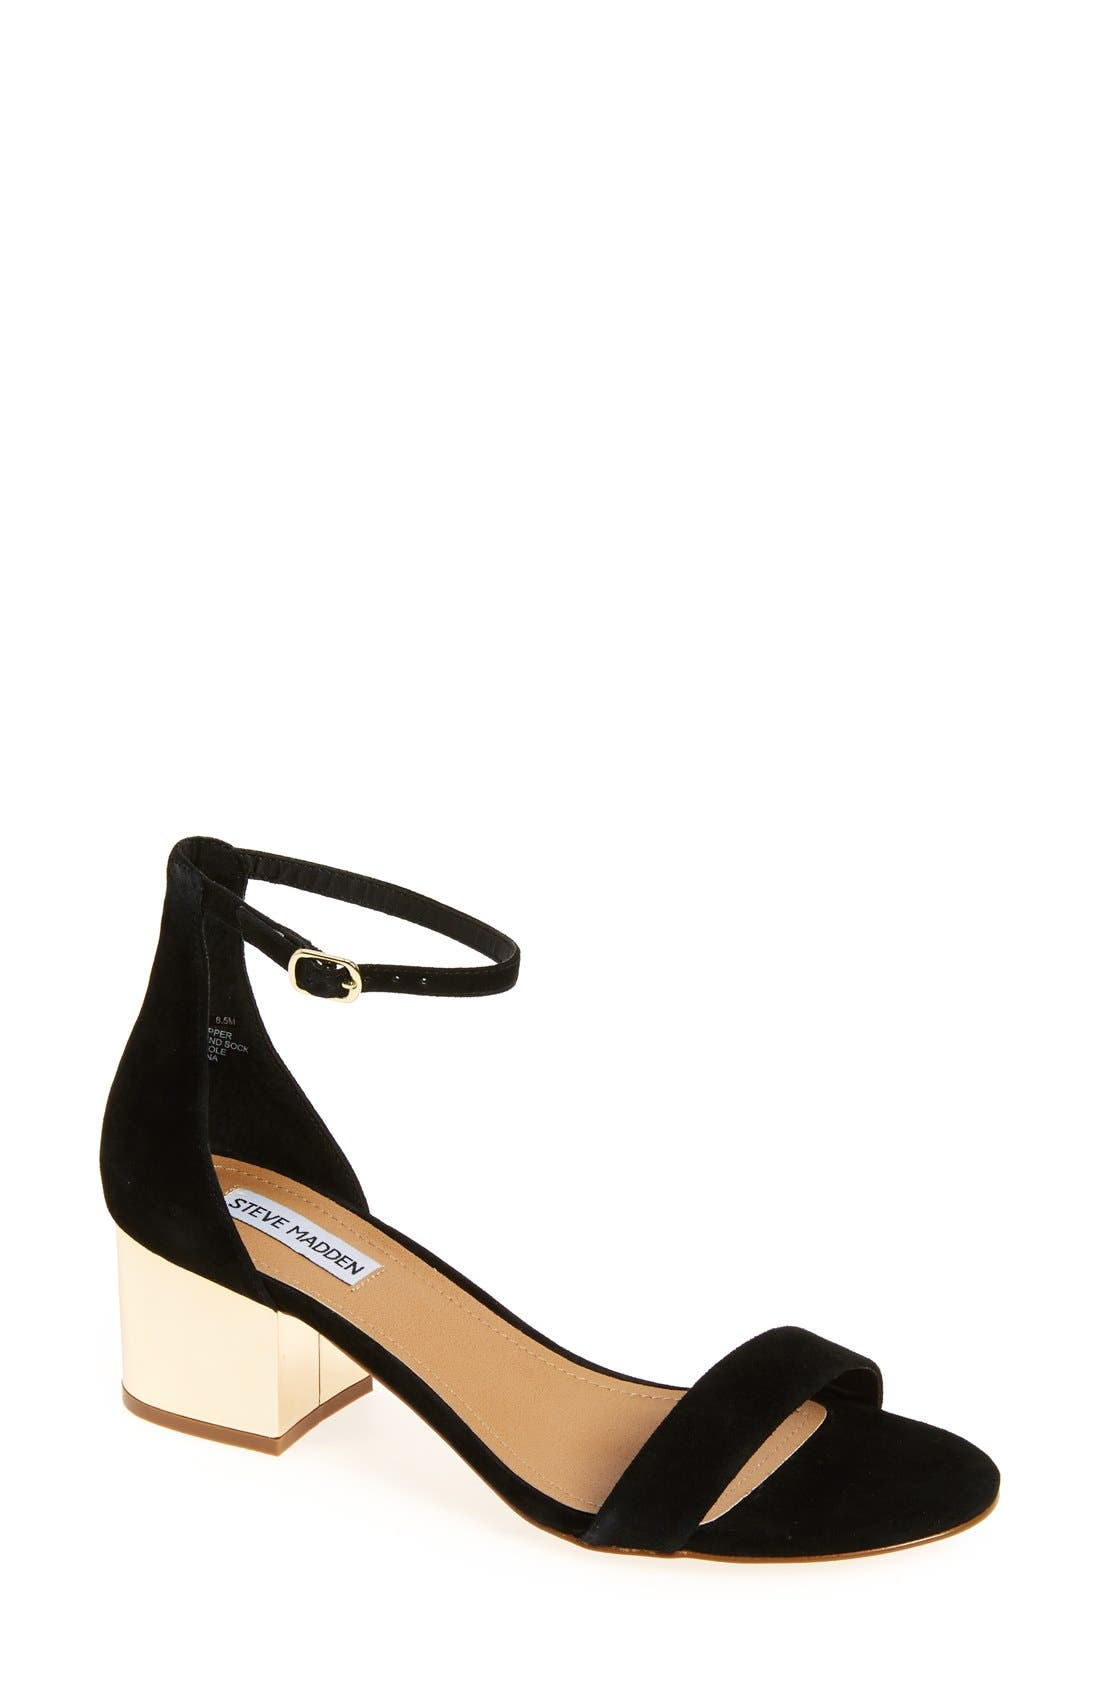 'Irenee-G' Mirror Block Heel Sandal,                         Main,                         color, Black Suede